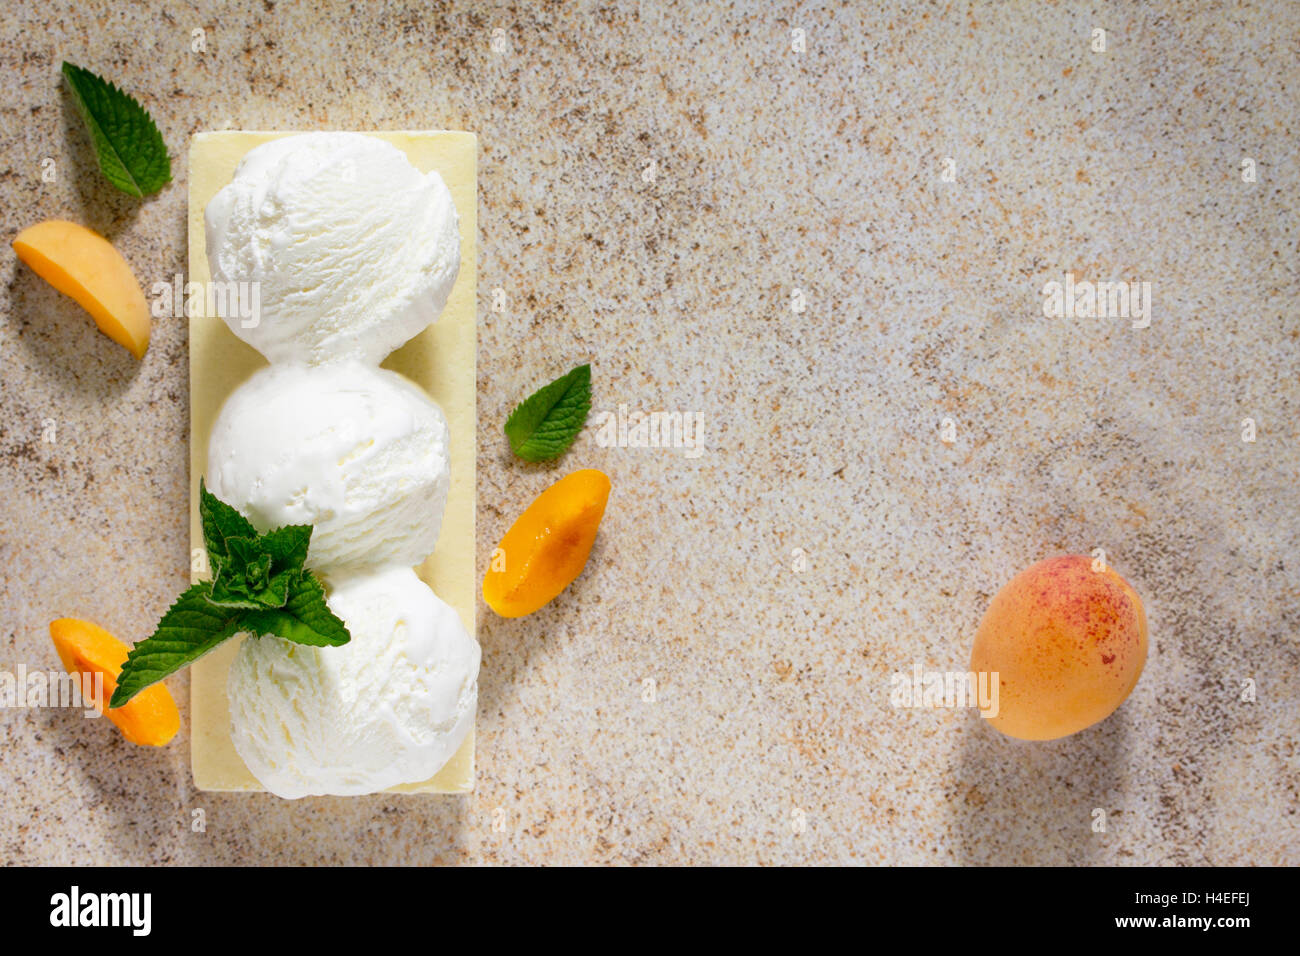 Ice cream with a peach in a form a ball, place for your text. - Stock Image